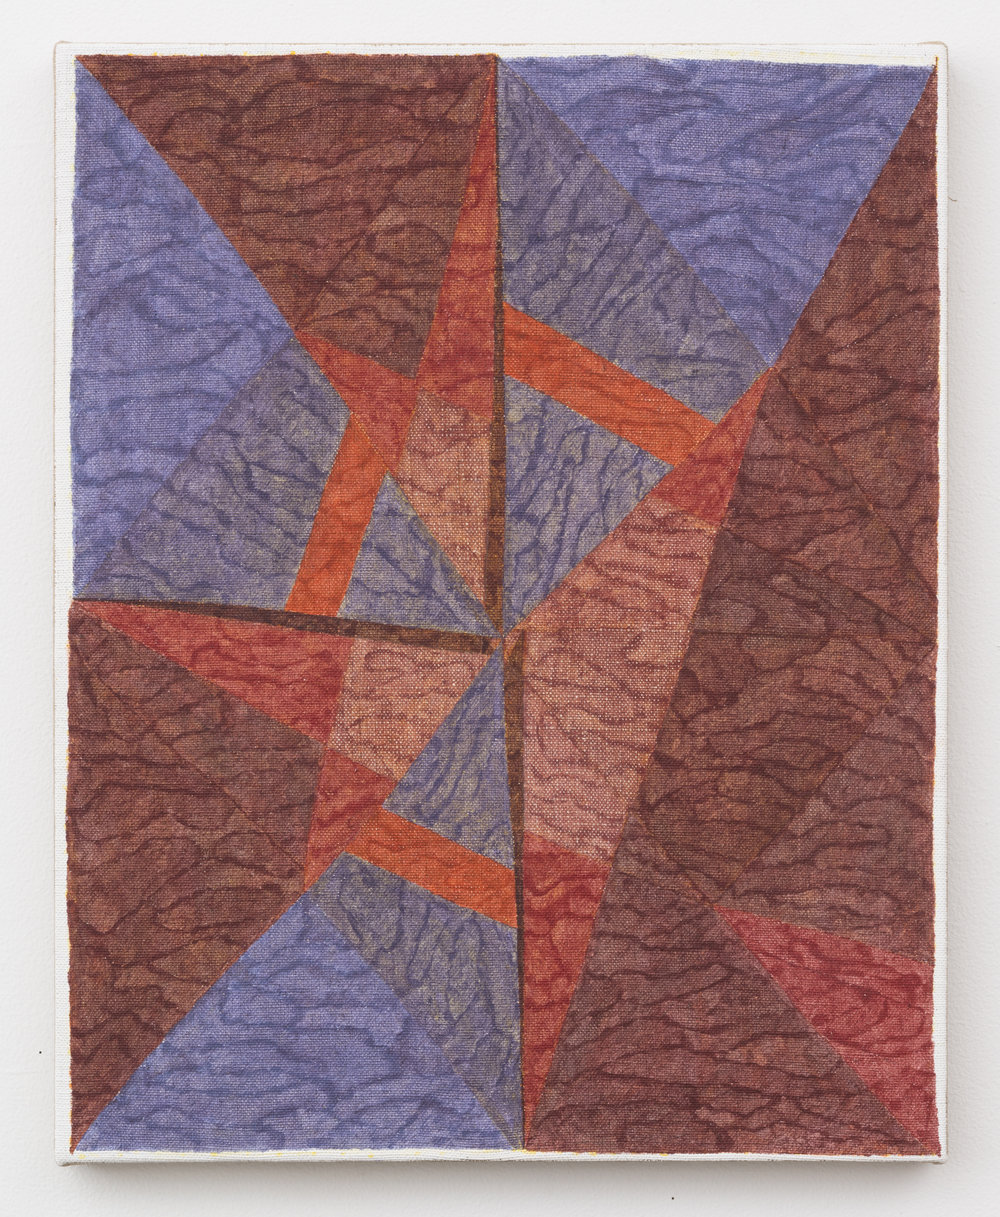 Cardinal Silica and Pigment on Linen 20in x 16in 2017